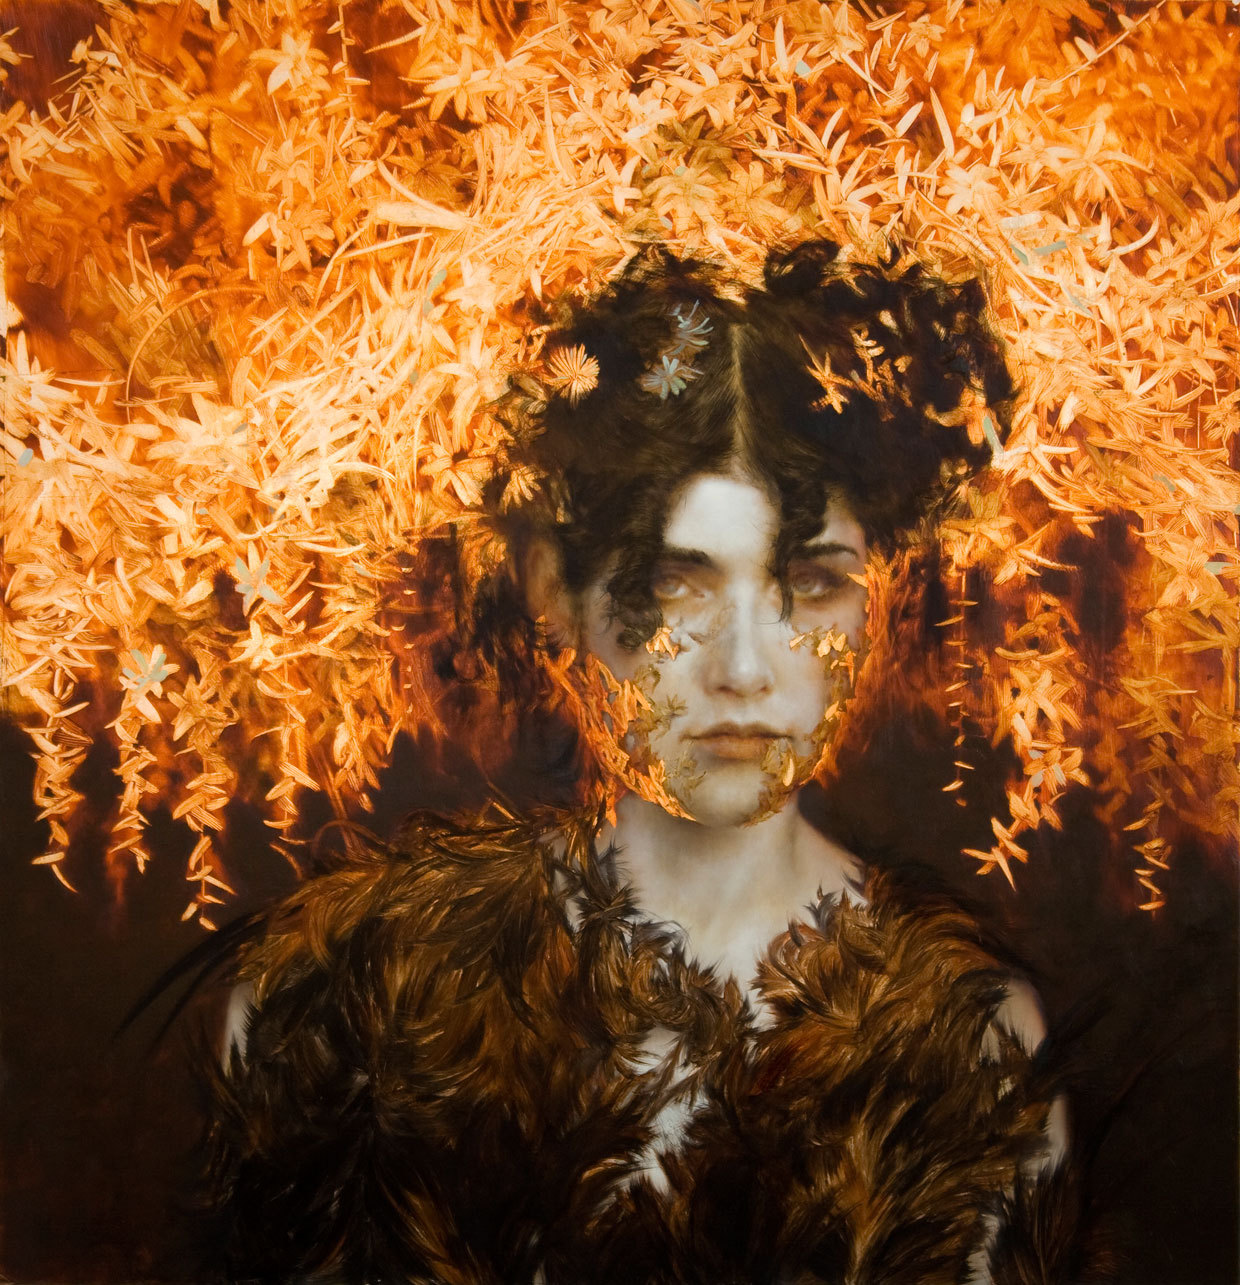 Brad Kunkle, Candela, 33 x 32 inches, Oil and silver leaf on wood, 2011